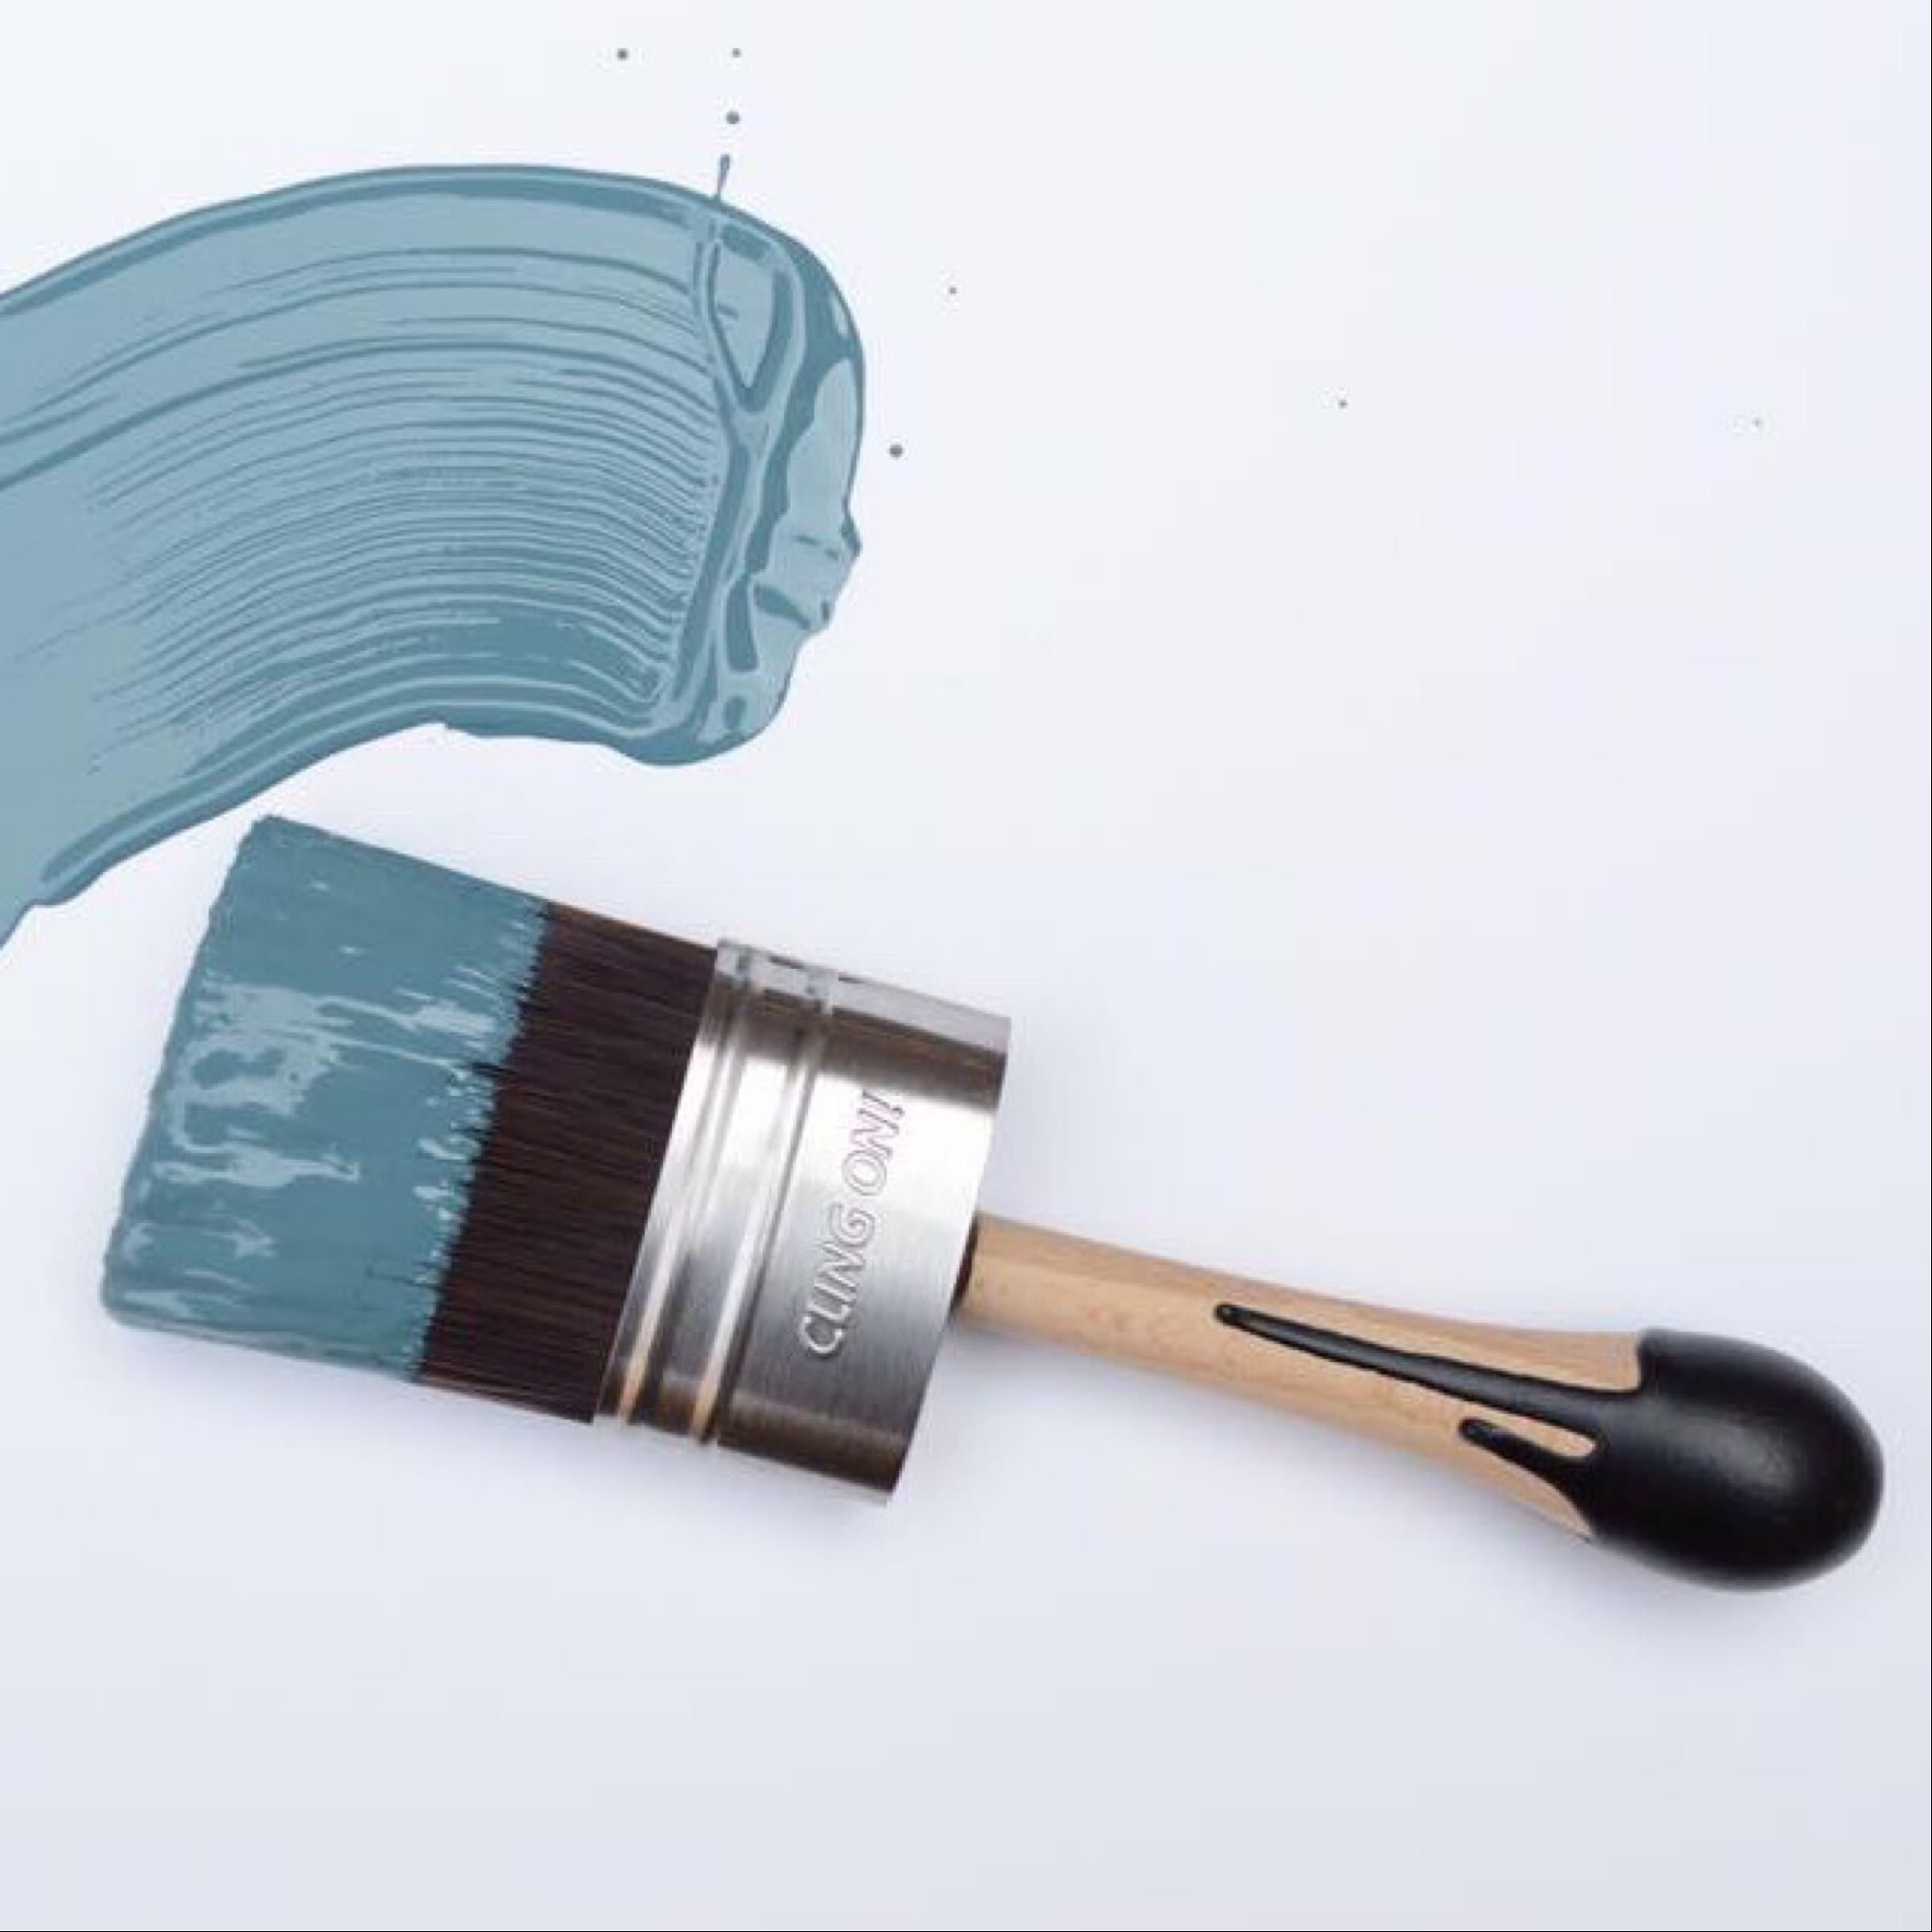 Cling On Brushes Short Handle - S50 (Shortie)